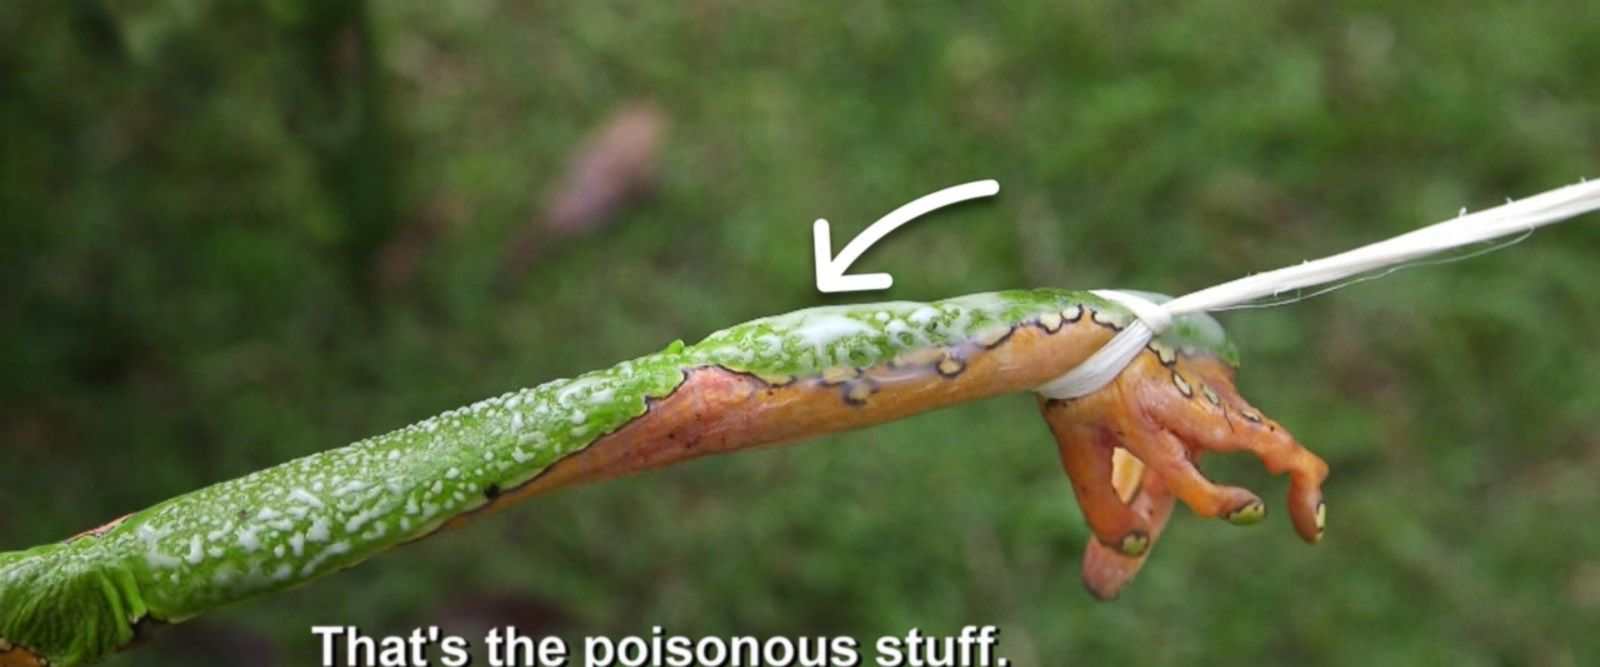 VIDEO: This elusive Amazon tree frog's venom is said to have miraculous healing powers